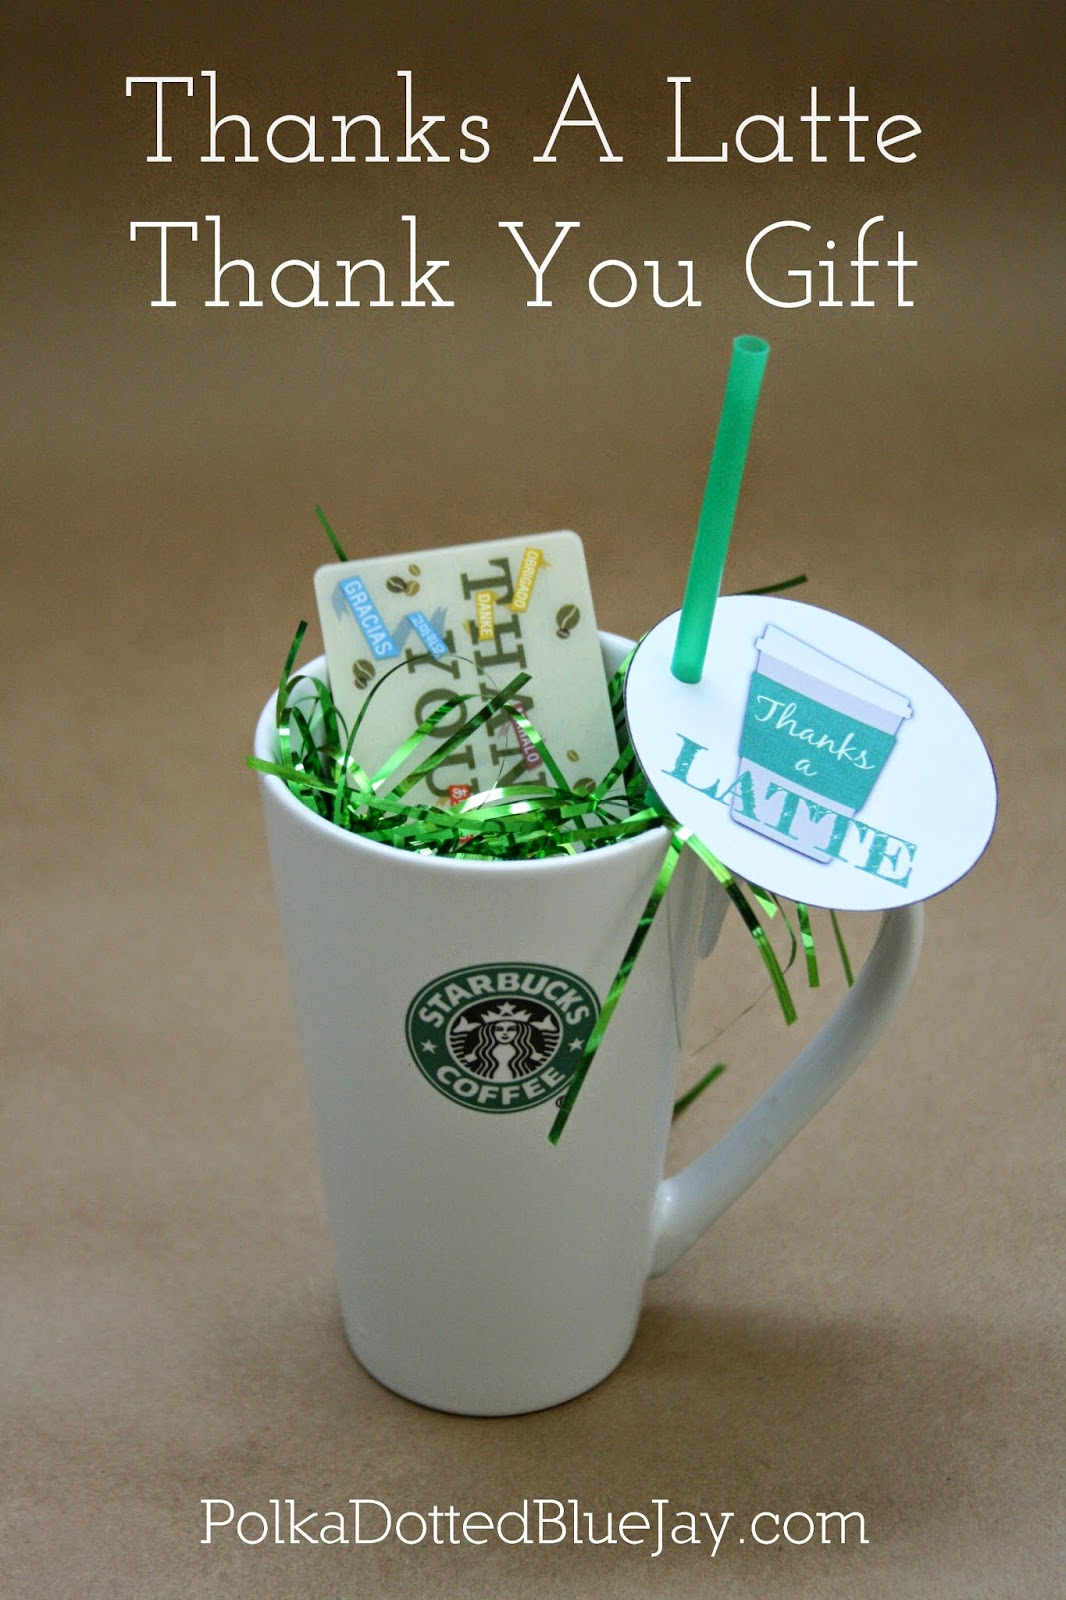 Thanks A Latte Thank You Gift Update Polka Dotted Blue Jay